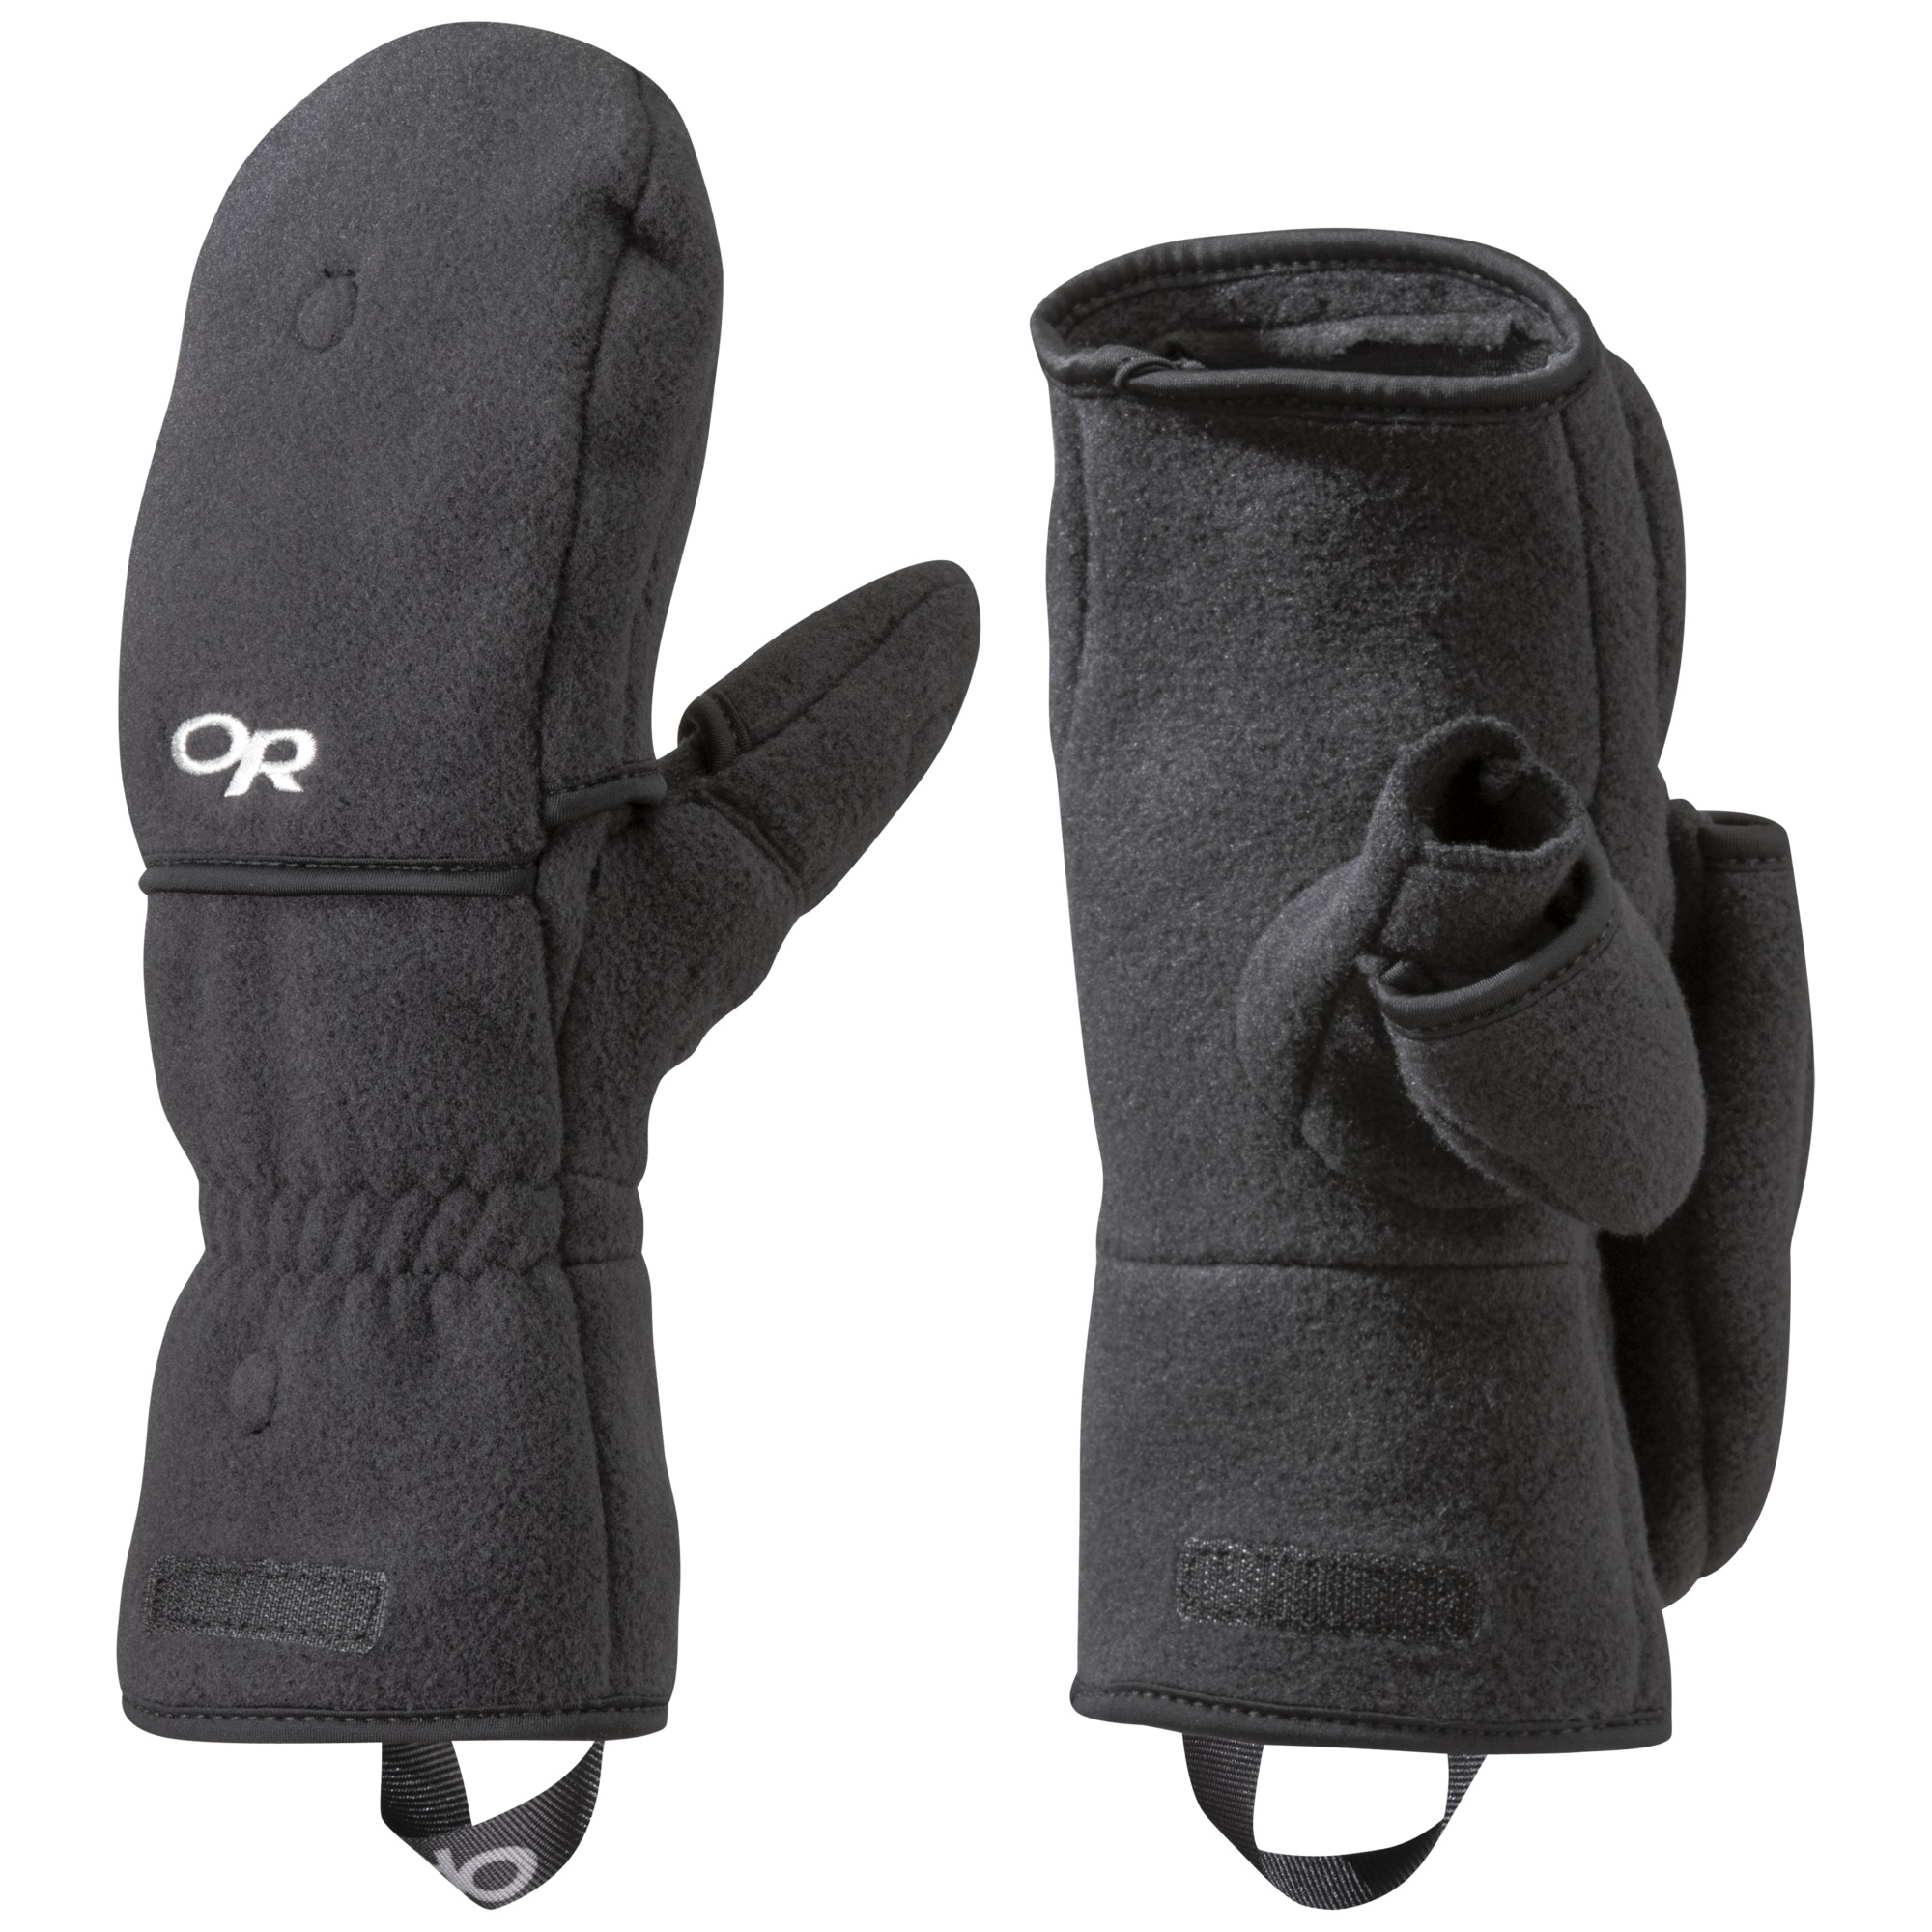 31d22c37c20 Meteor Mitts - black charcoal